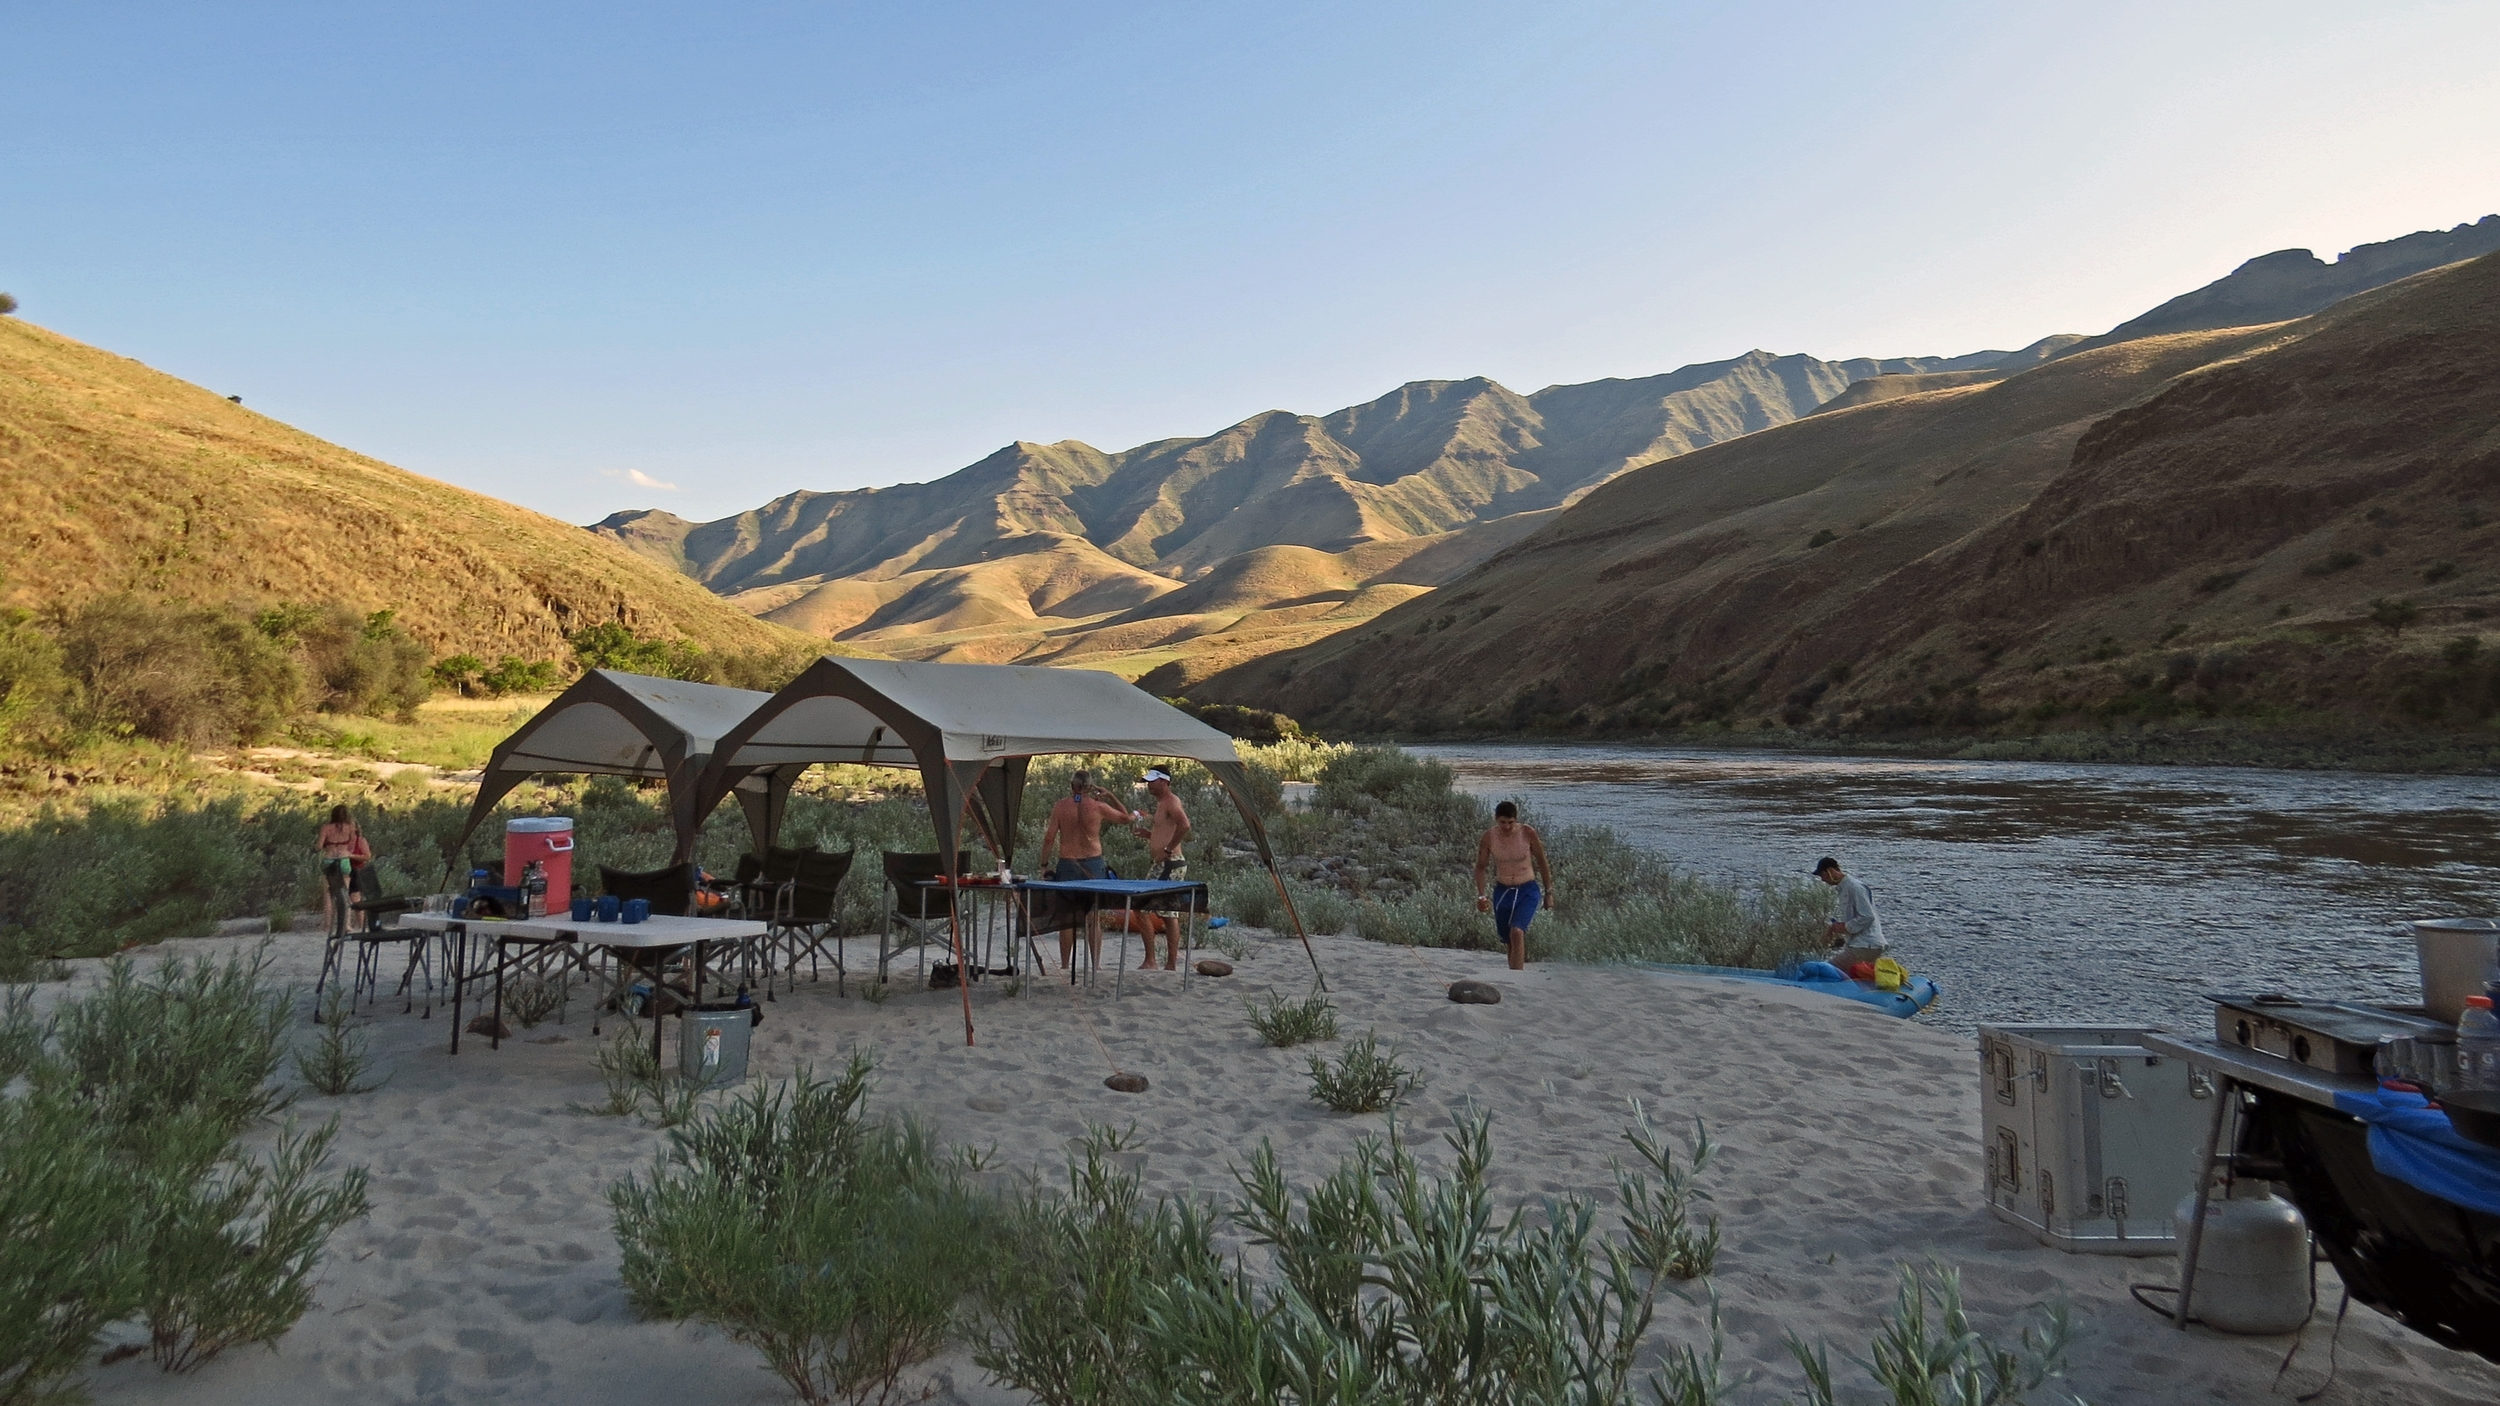 Tents in camp on Salmon River whitewater river trip.